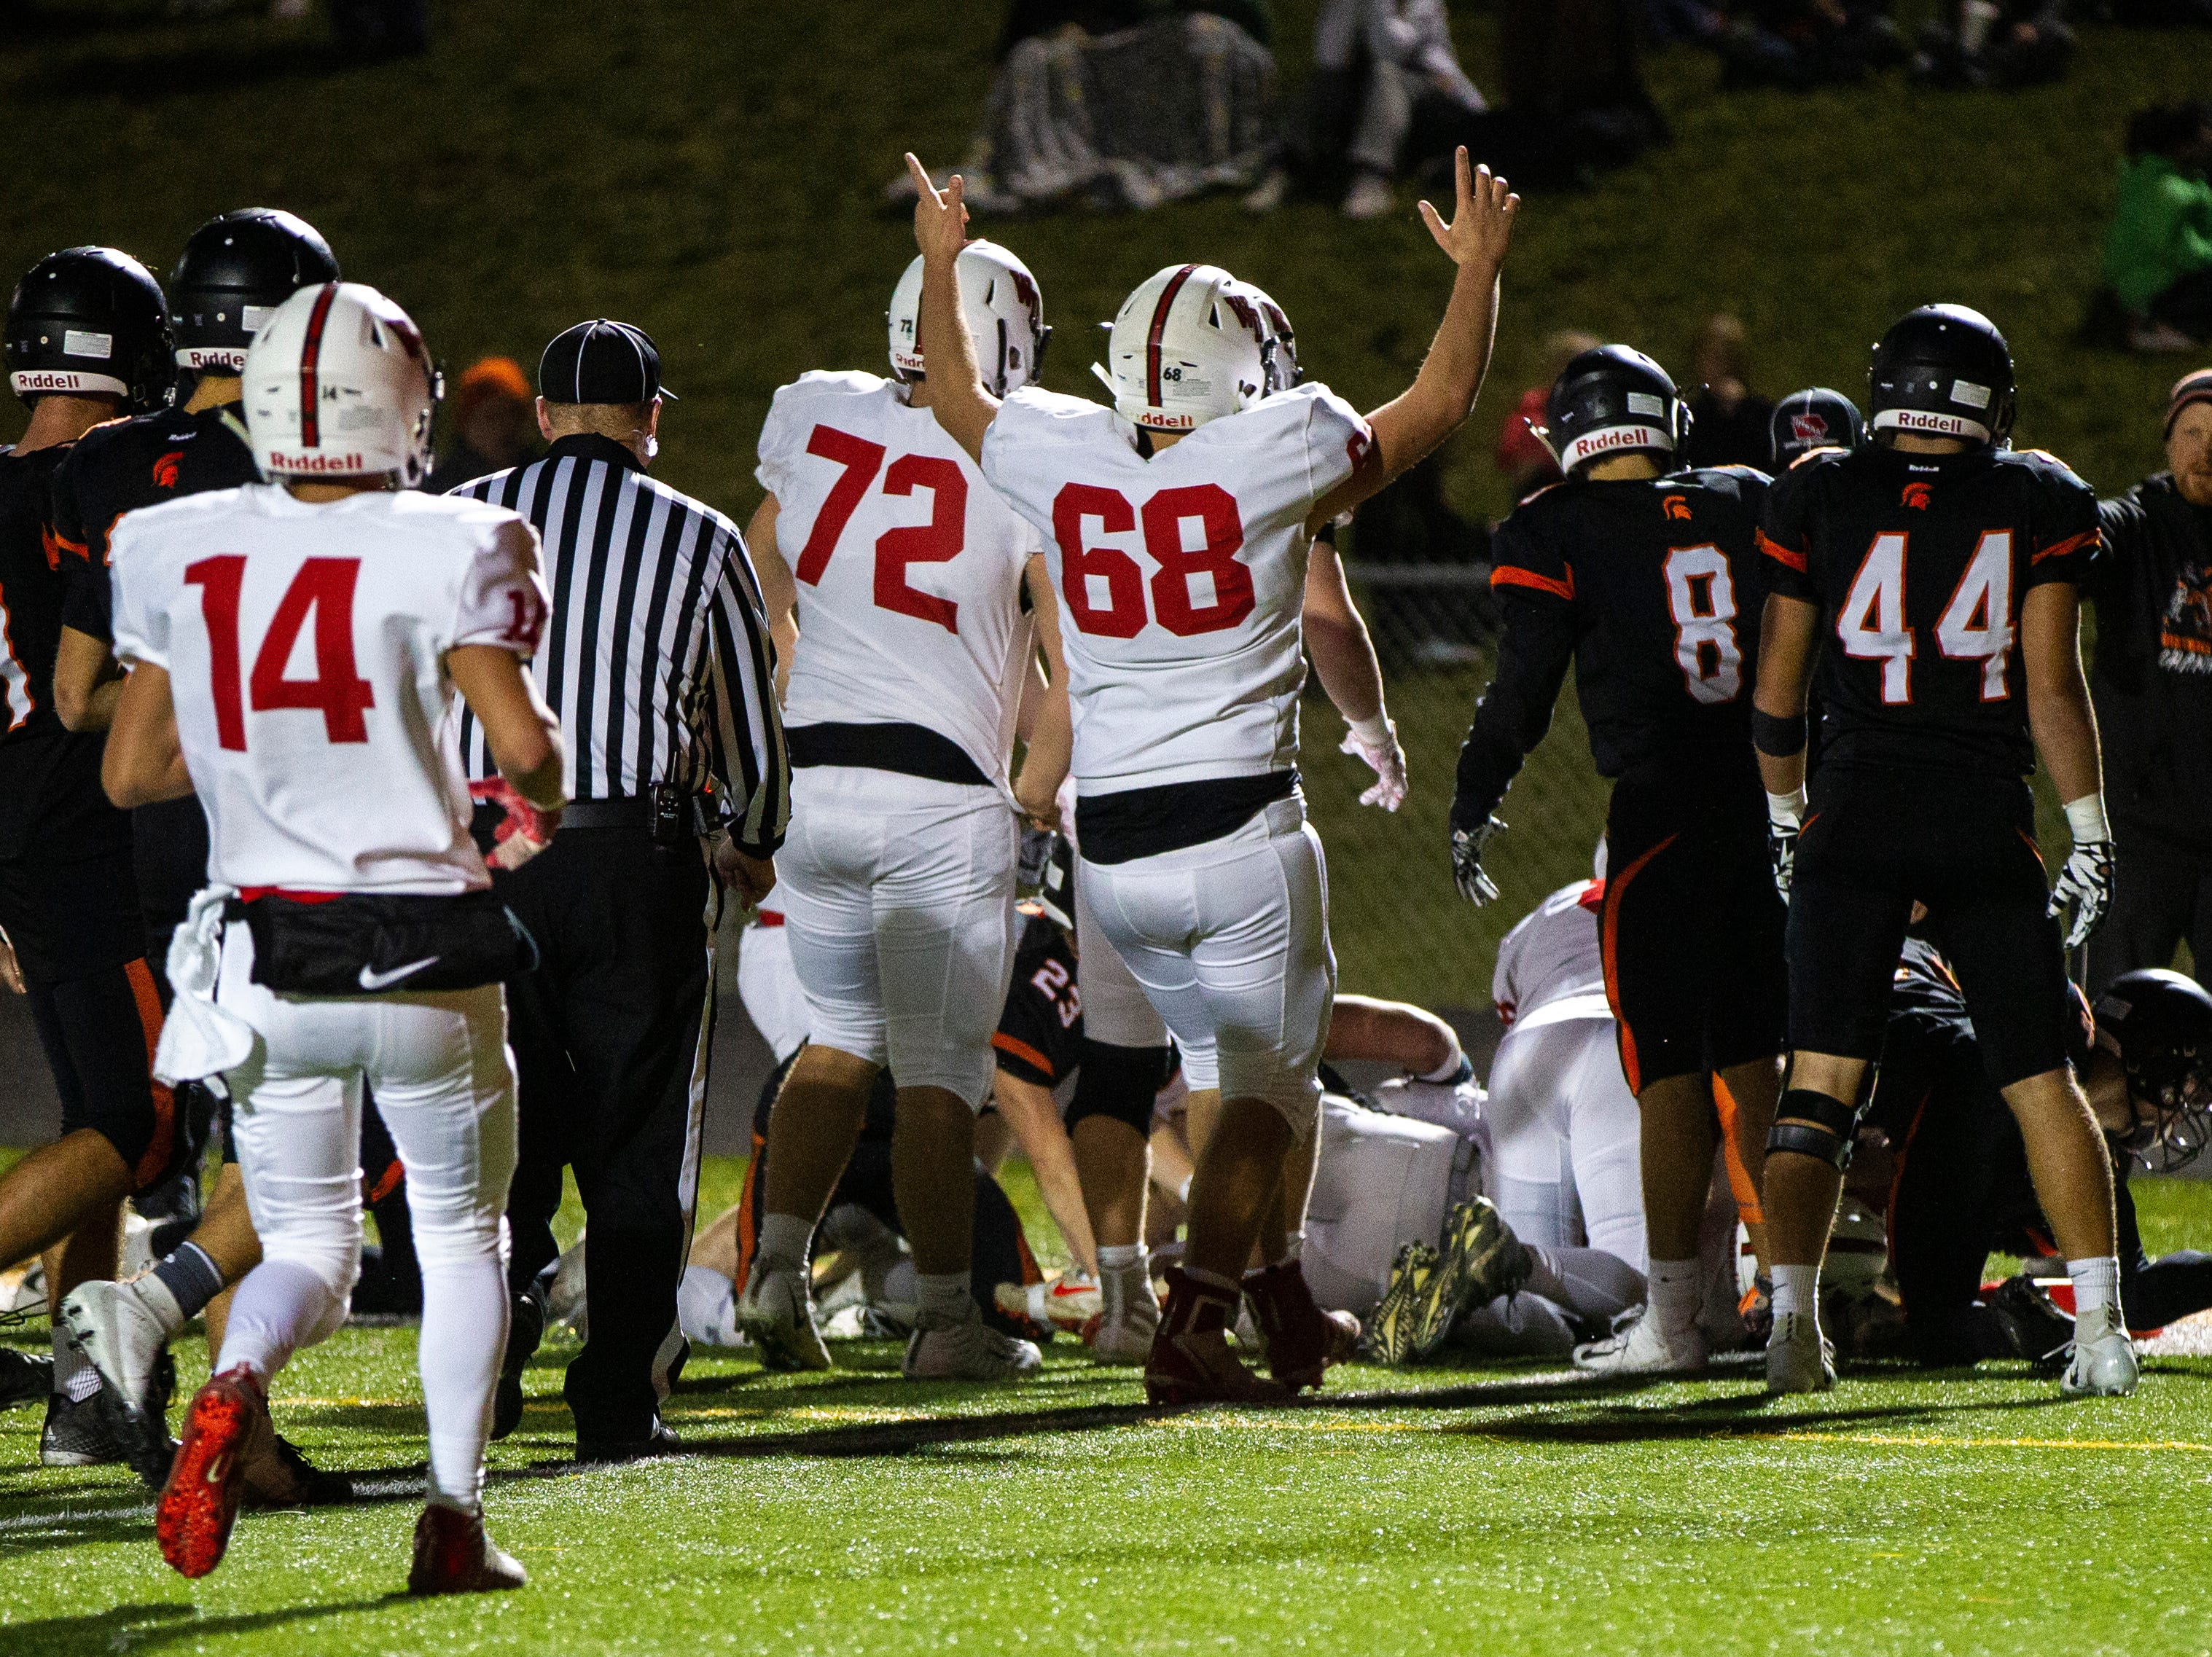 Western Dubuque players celebrate a touchdown during a Class 3A varsity first round playoff football game on Friday, Oct. 26, 2018, at Spartan Stadium in Solon, Iowa.